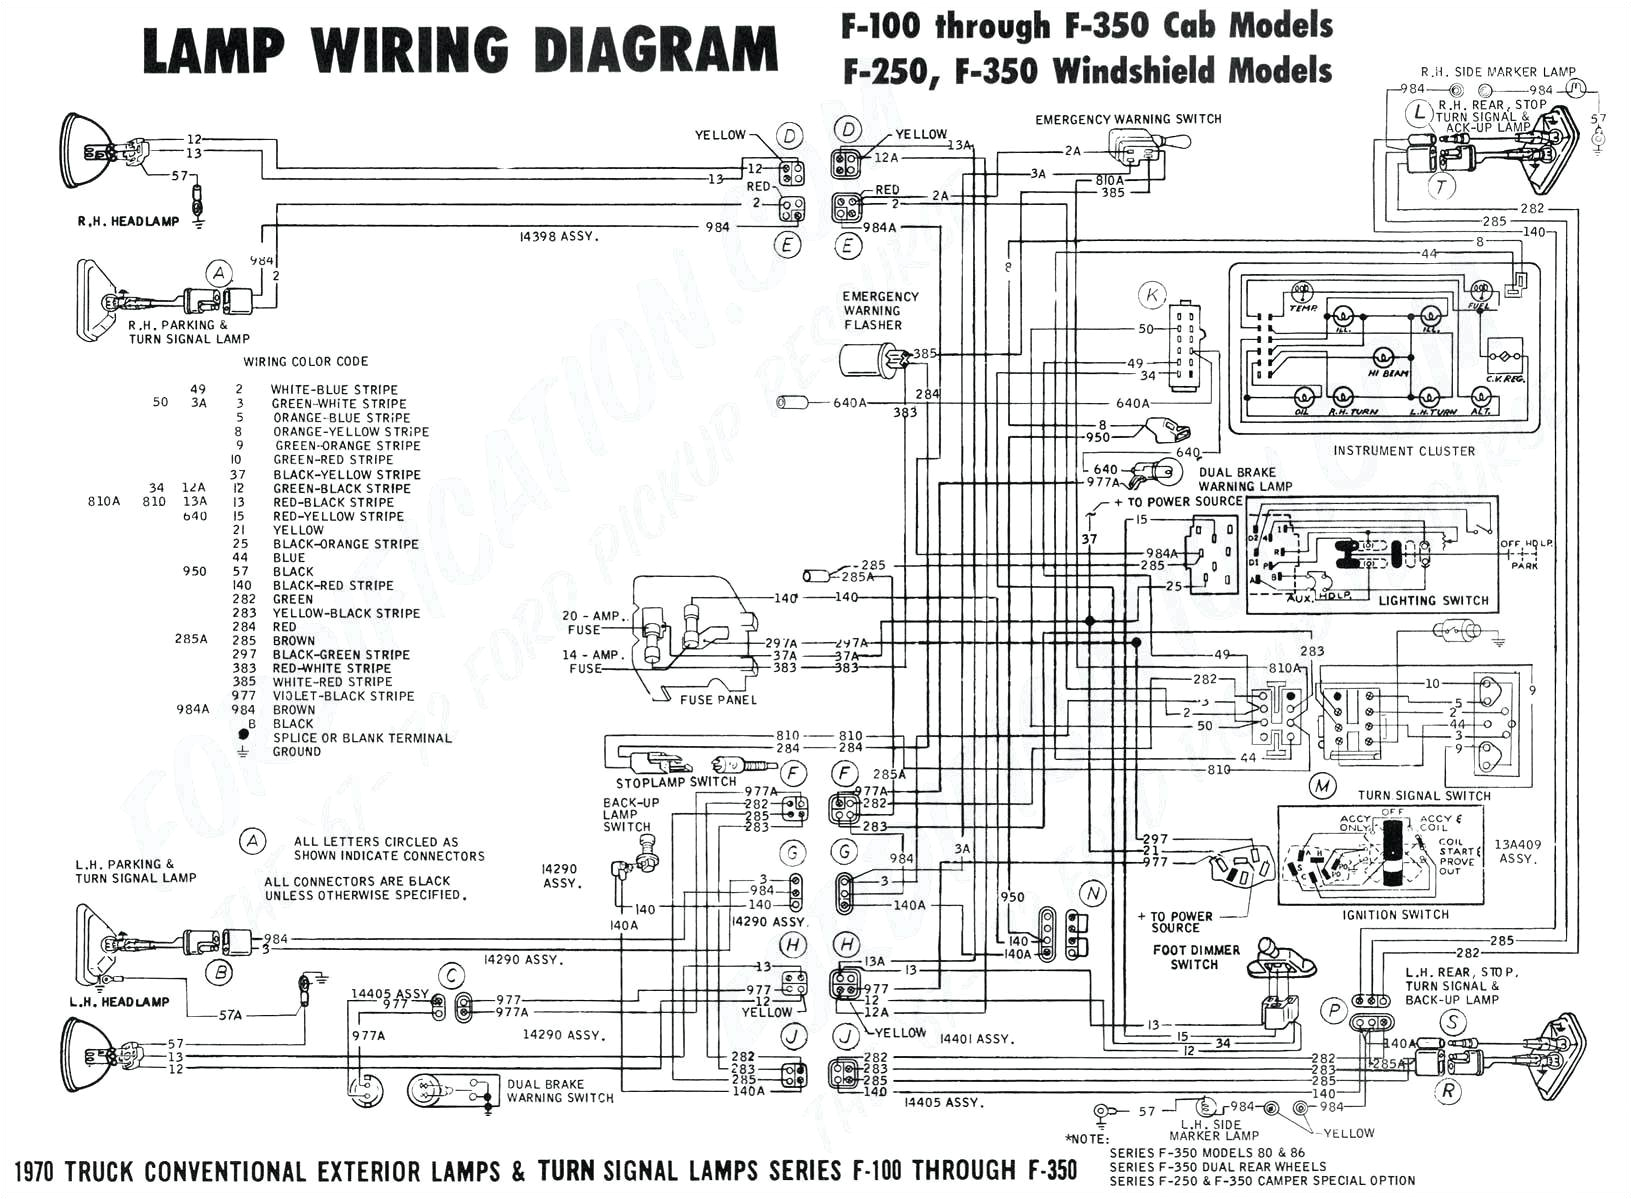 wiring diagram for 1997 vw cabrio cruisecontrol get free image about wiring diagram ame